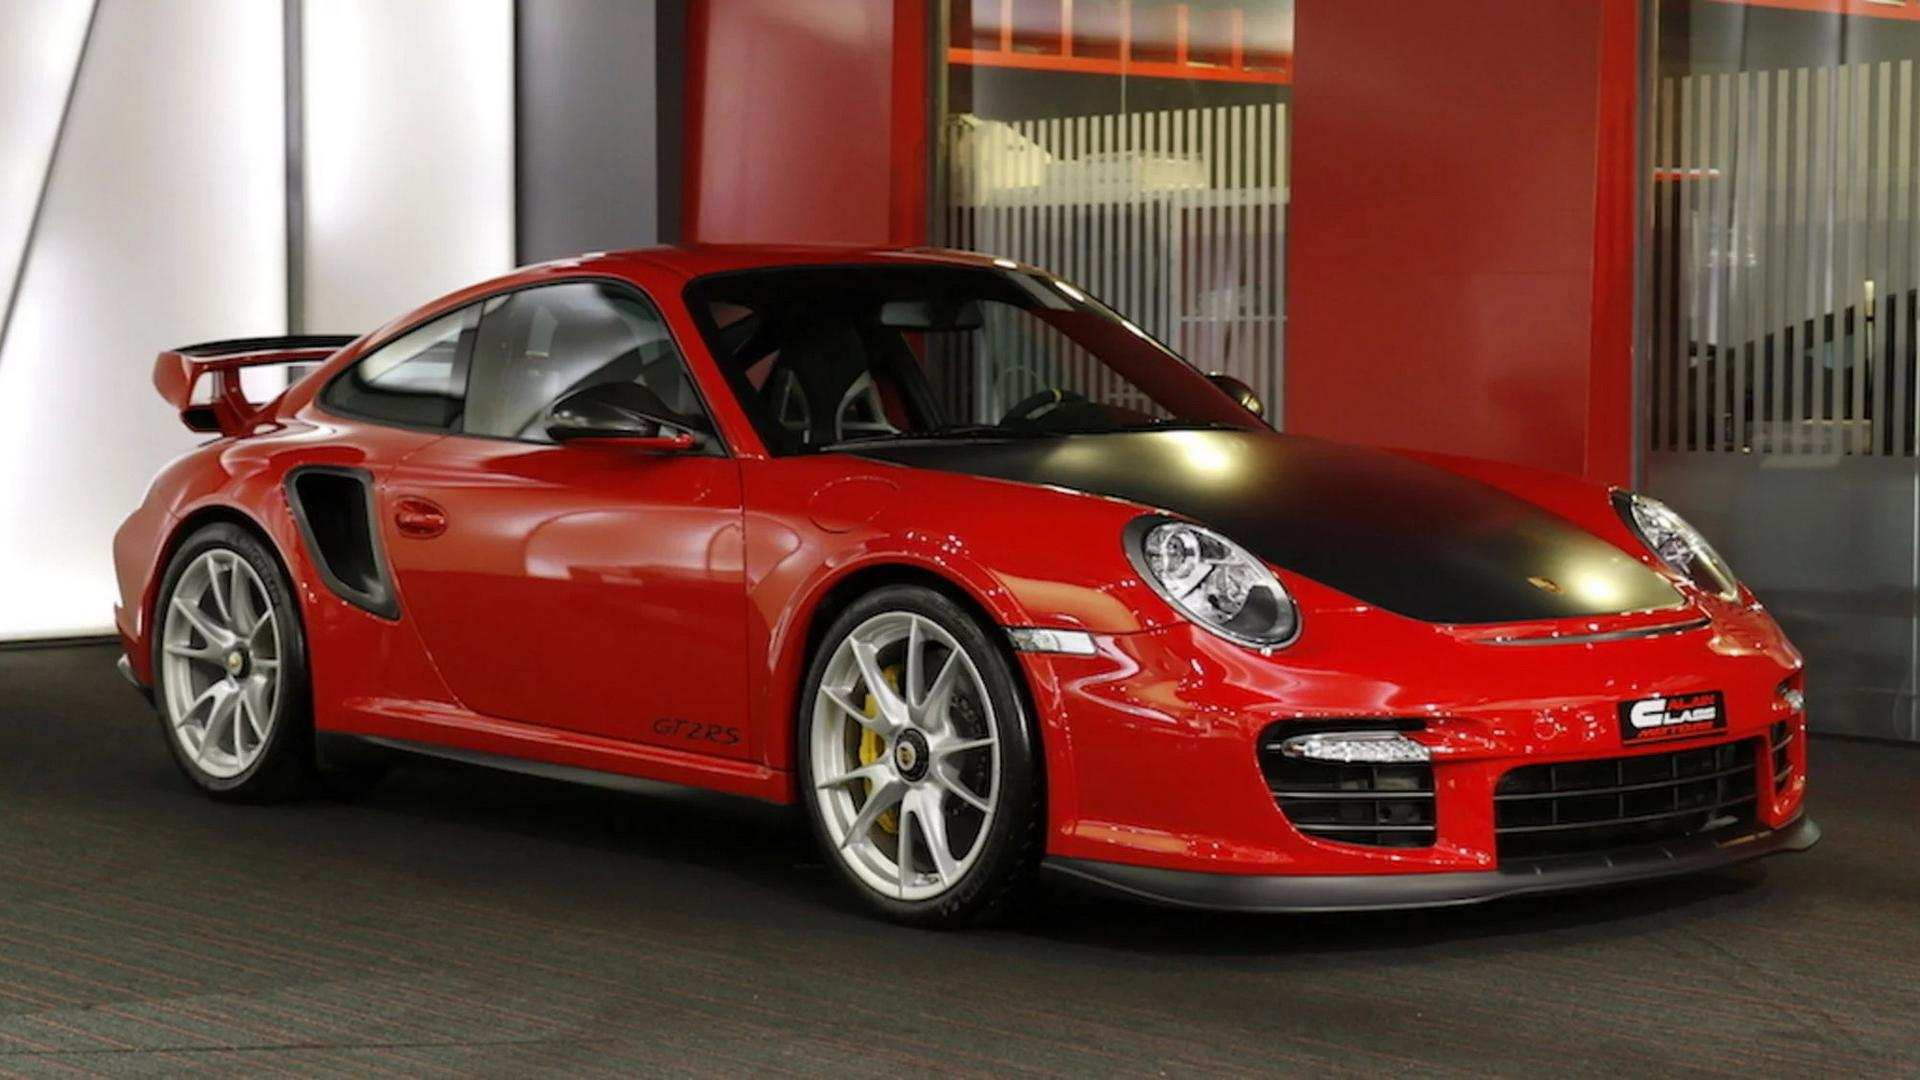 48 All New 2019 Porsche Gt2 Rs For Sale Price and Review for 2019 Porsche Gt2 Rs For Sale